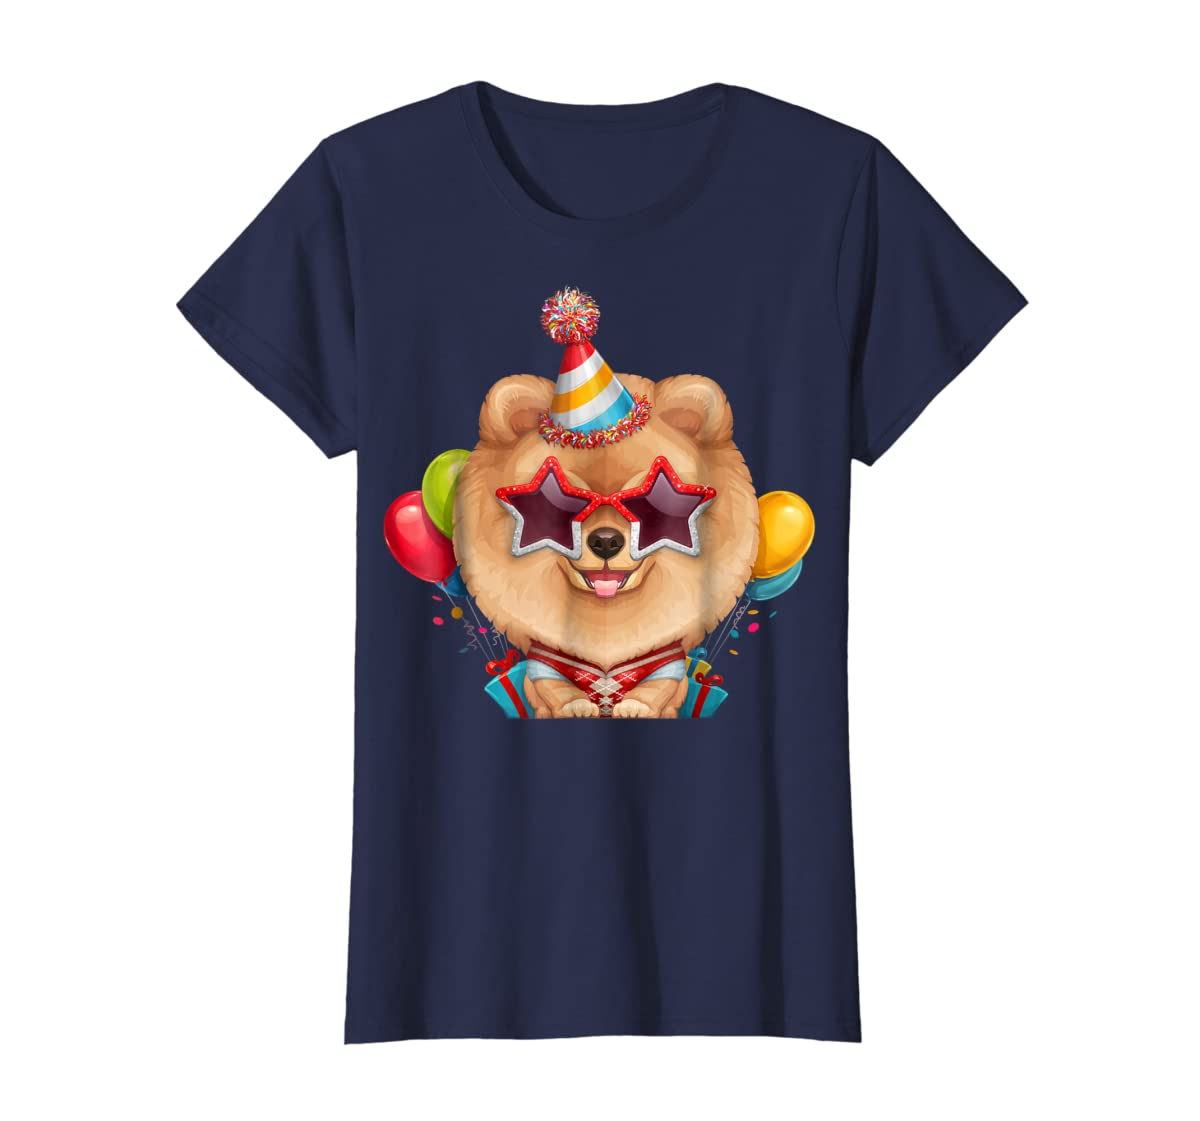 Orange Pomeranian in Glasses Birthday T-Shirt-Women's T-Shirt-Navy